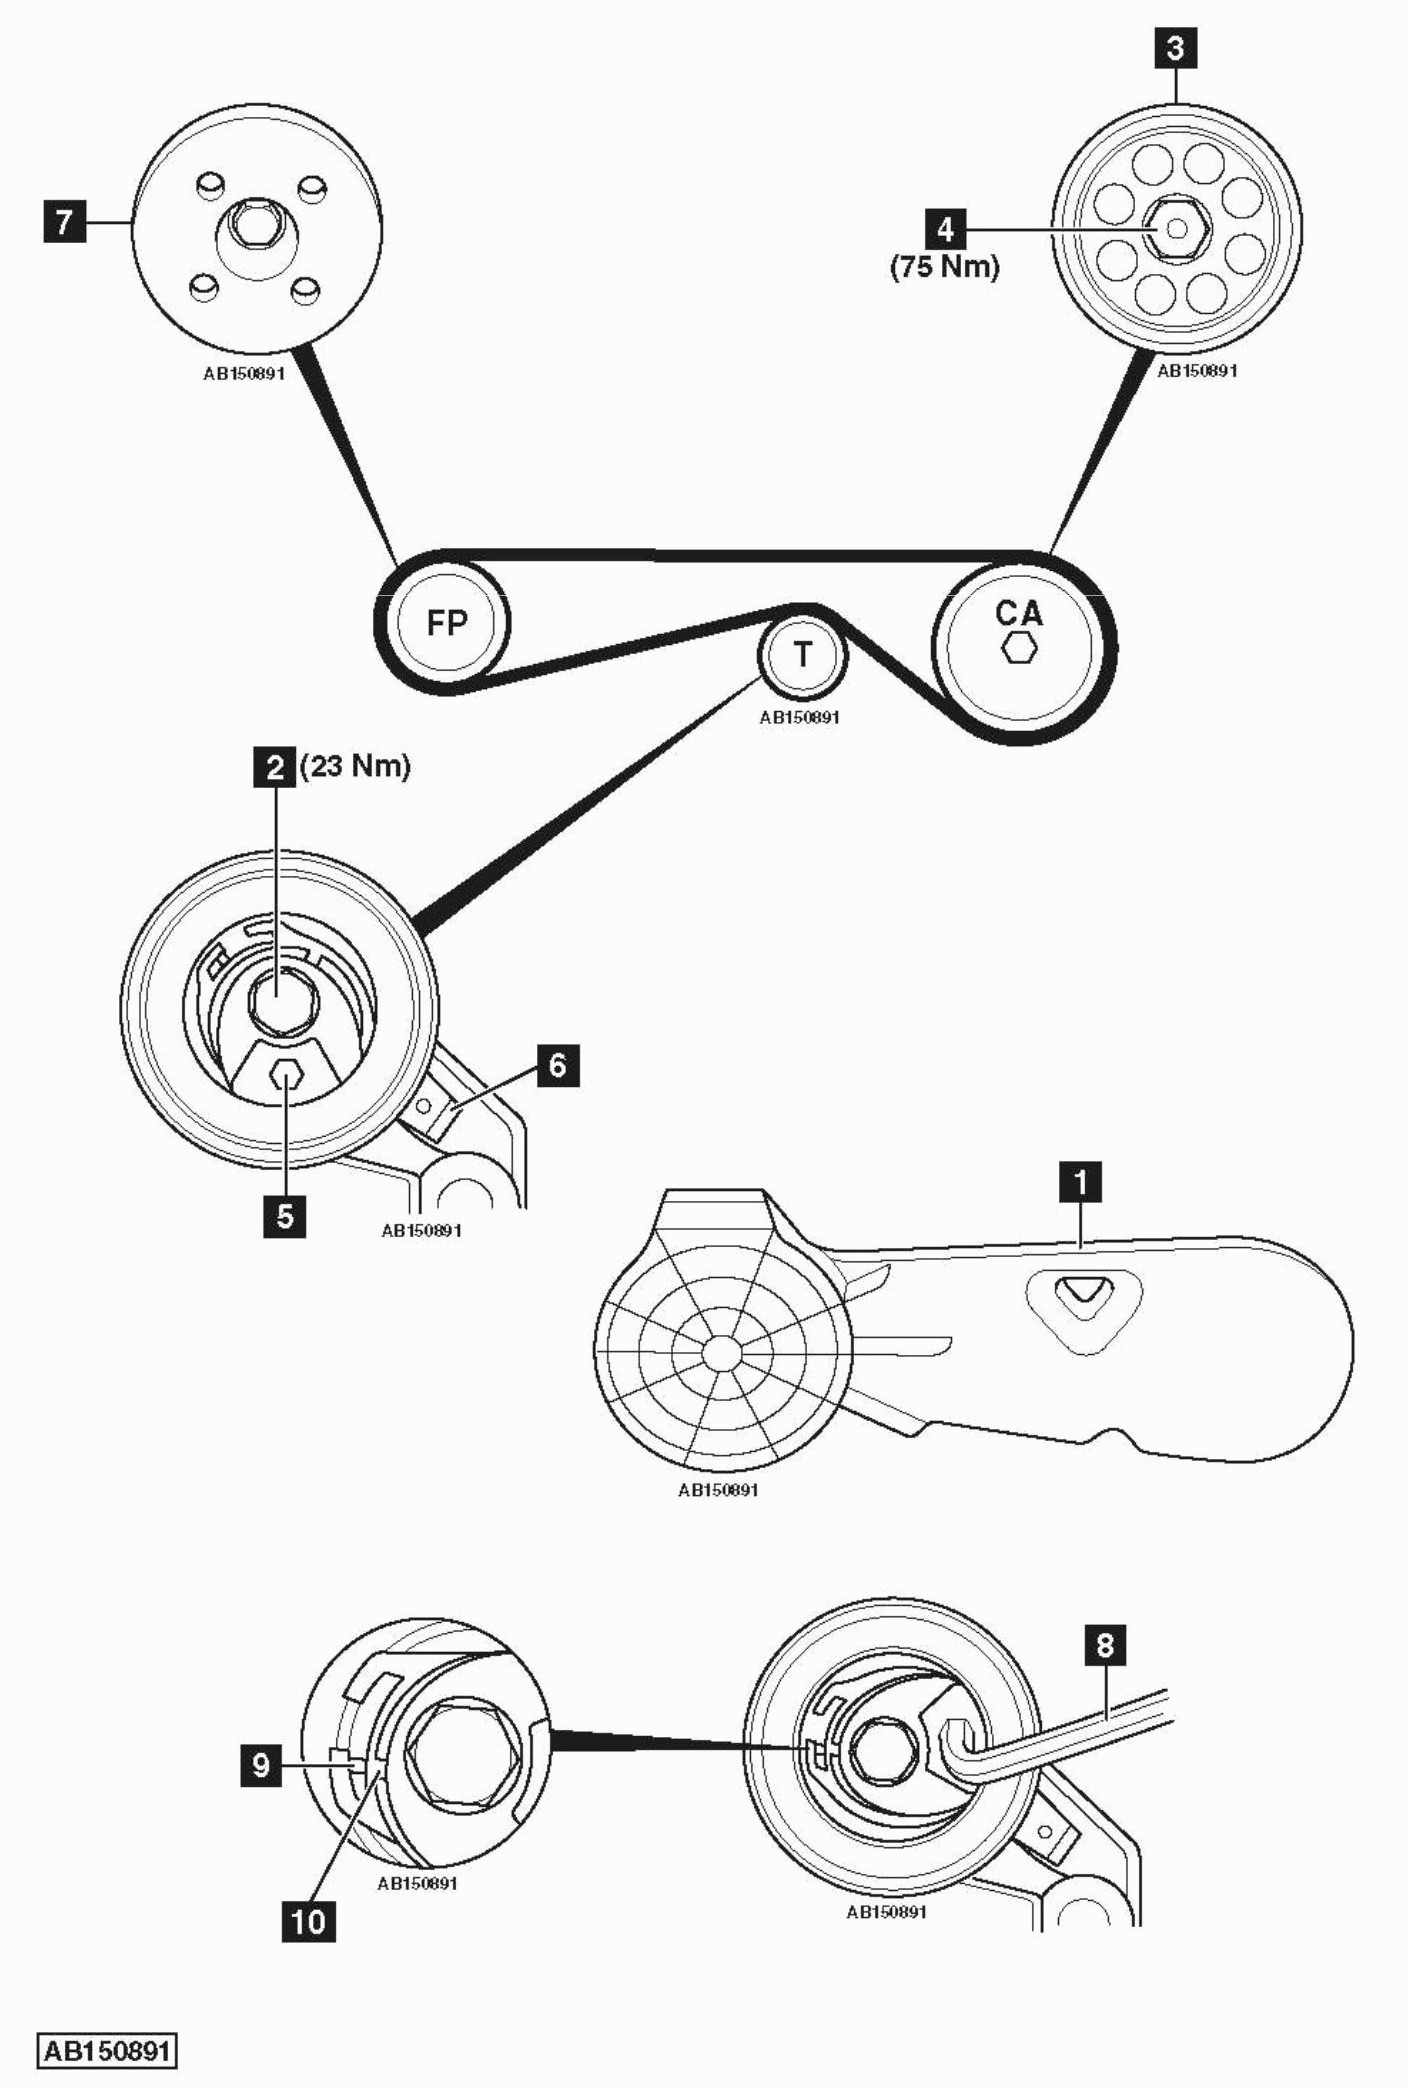 Diagram Of Car Gearbox Bmw Belt Best original Parts for E71 X6 35ix N54 Sac Engine Belt Of Diagram Of Car Gearbox Pin by Rodrigo Passos On Gearbox